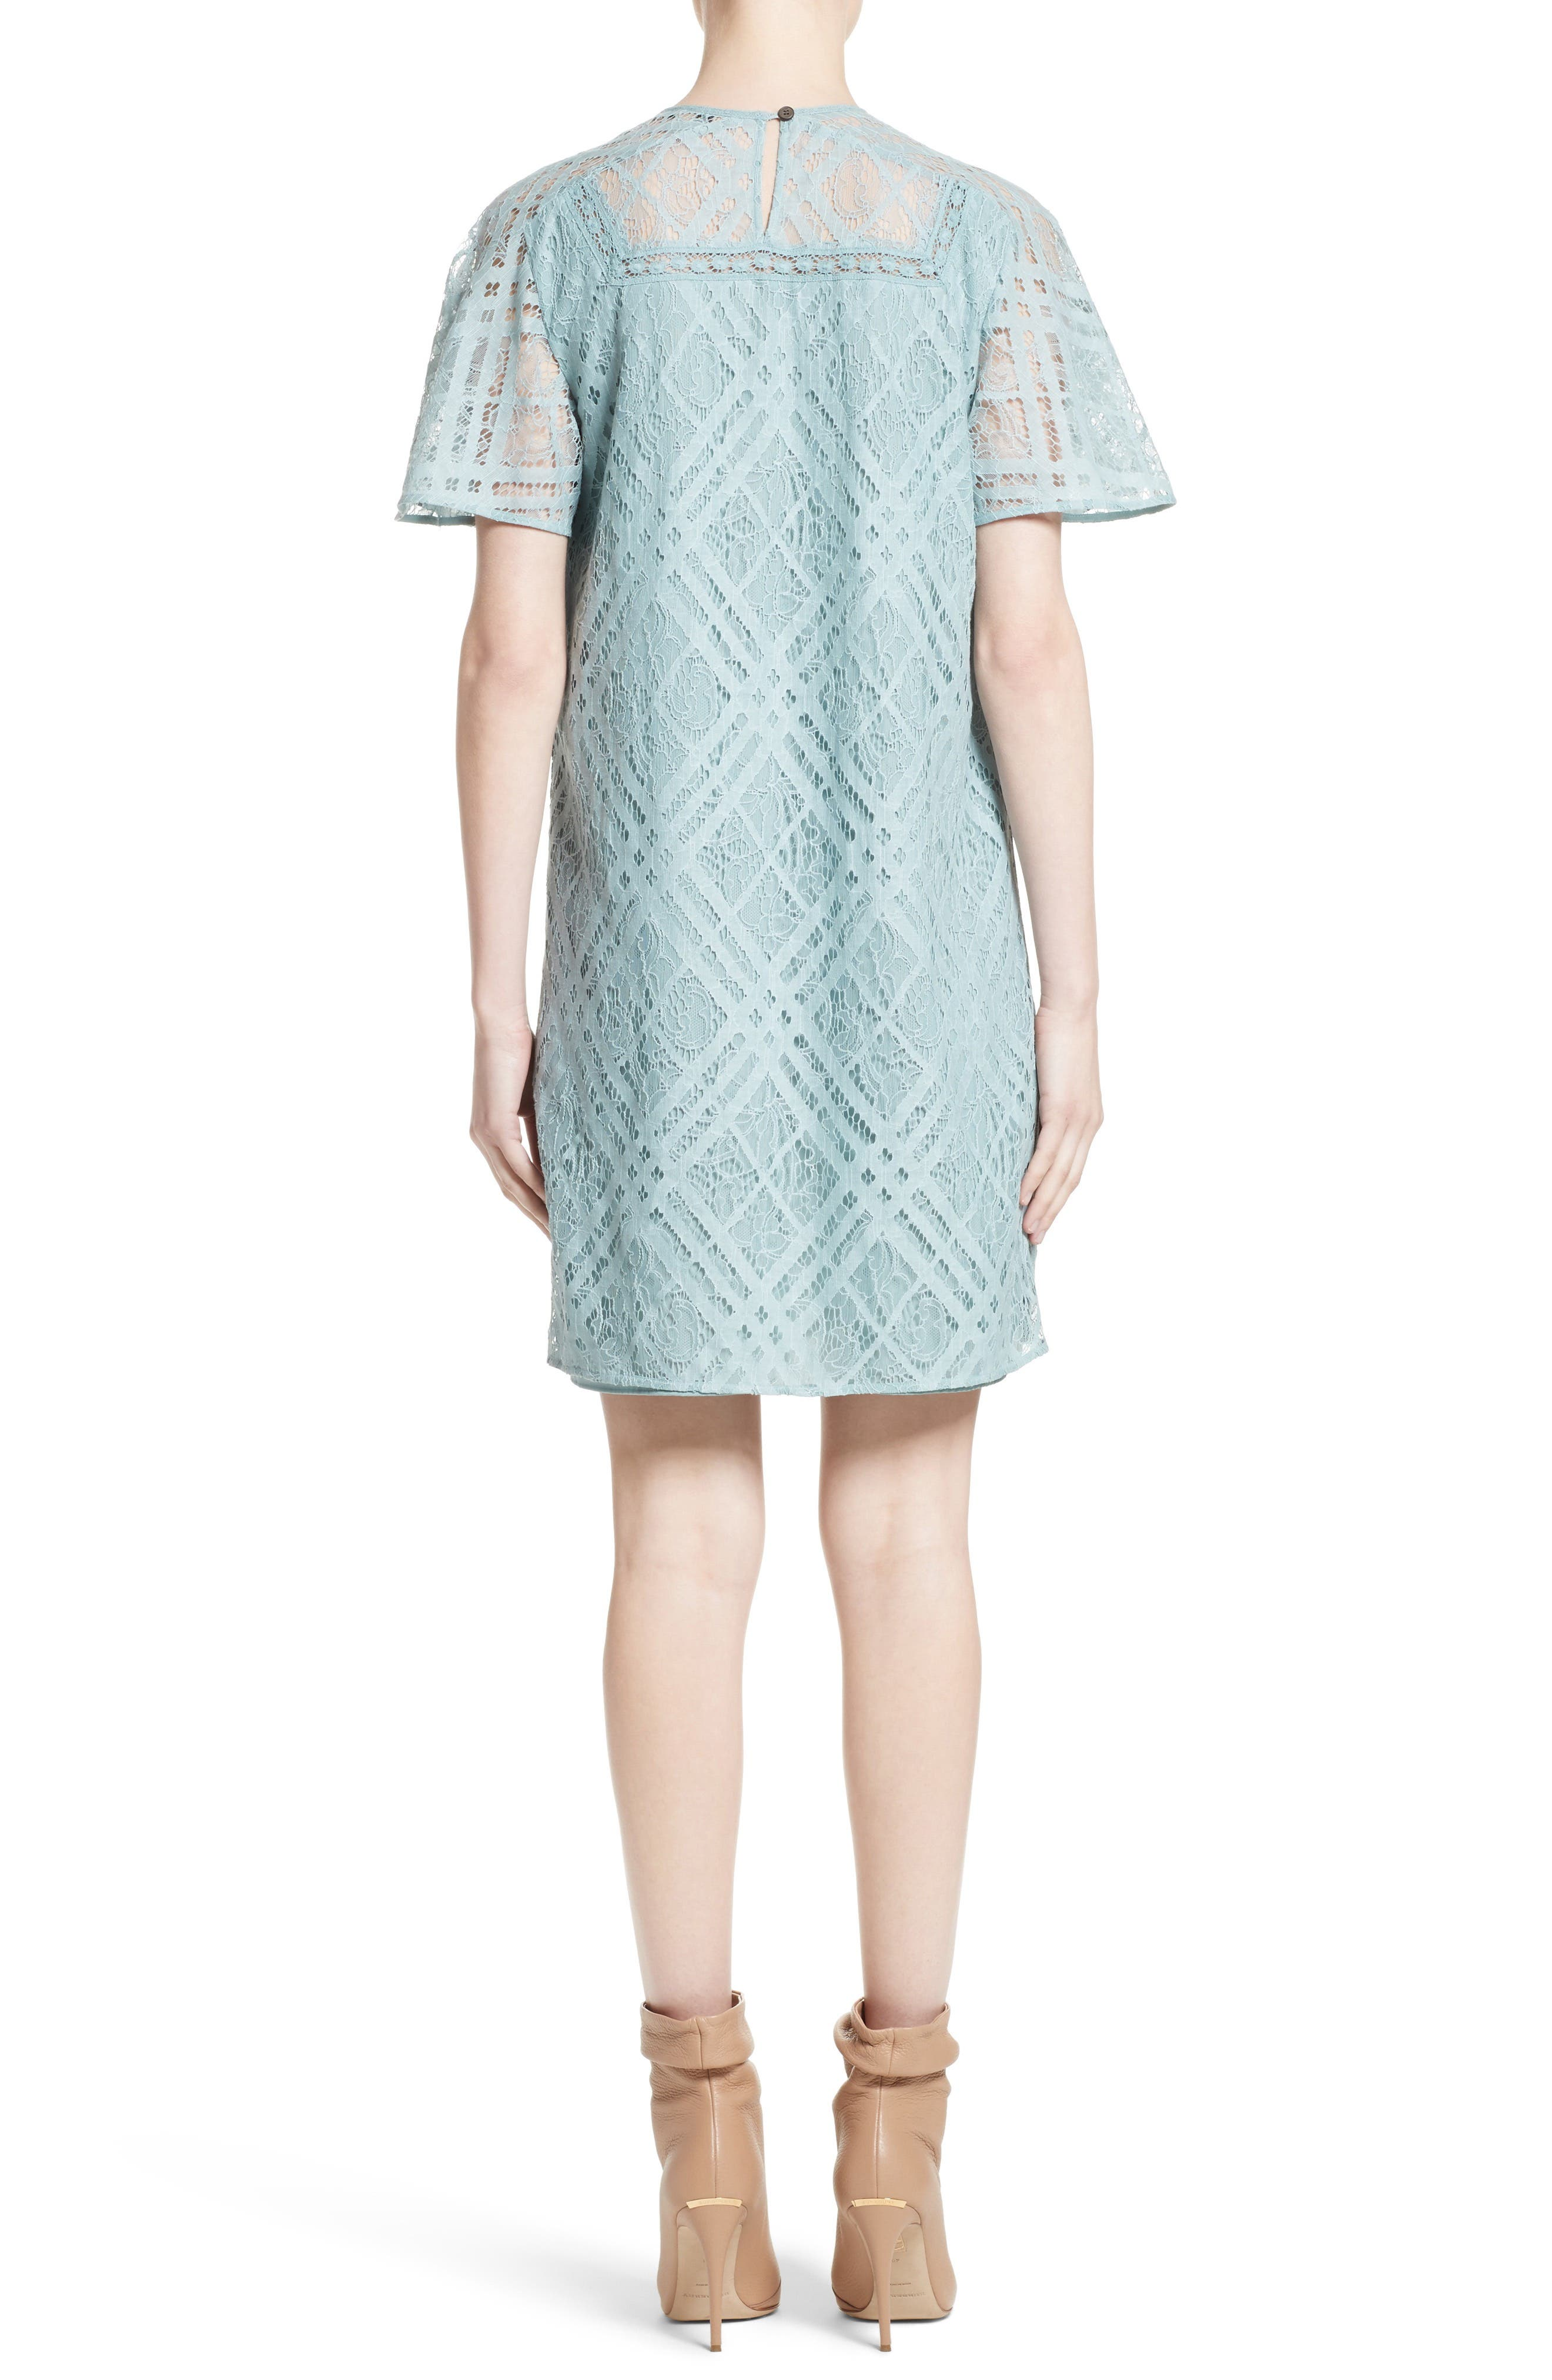 Keri Floral Check Lace Dress,                             Alternate thumbnail 2, color,                             Pale Slate Blue